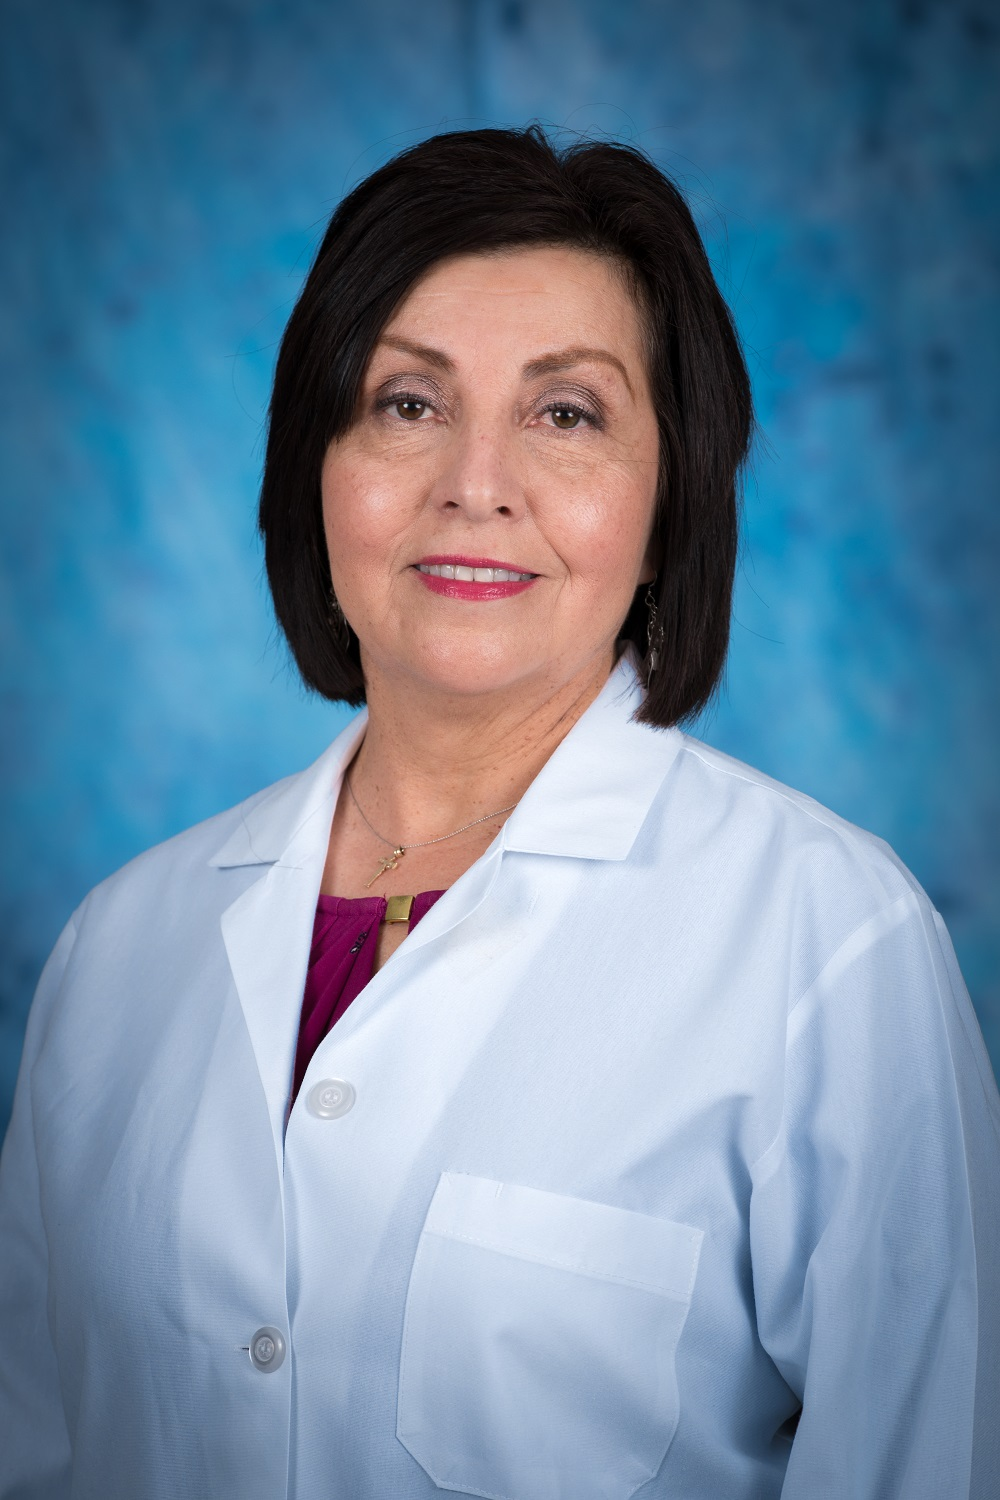 Lia Boyanton, MD of Crossville Medical Group